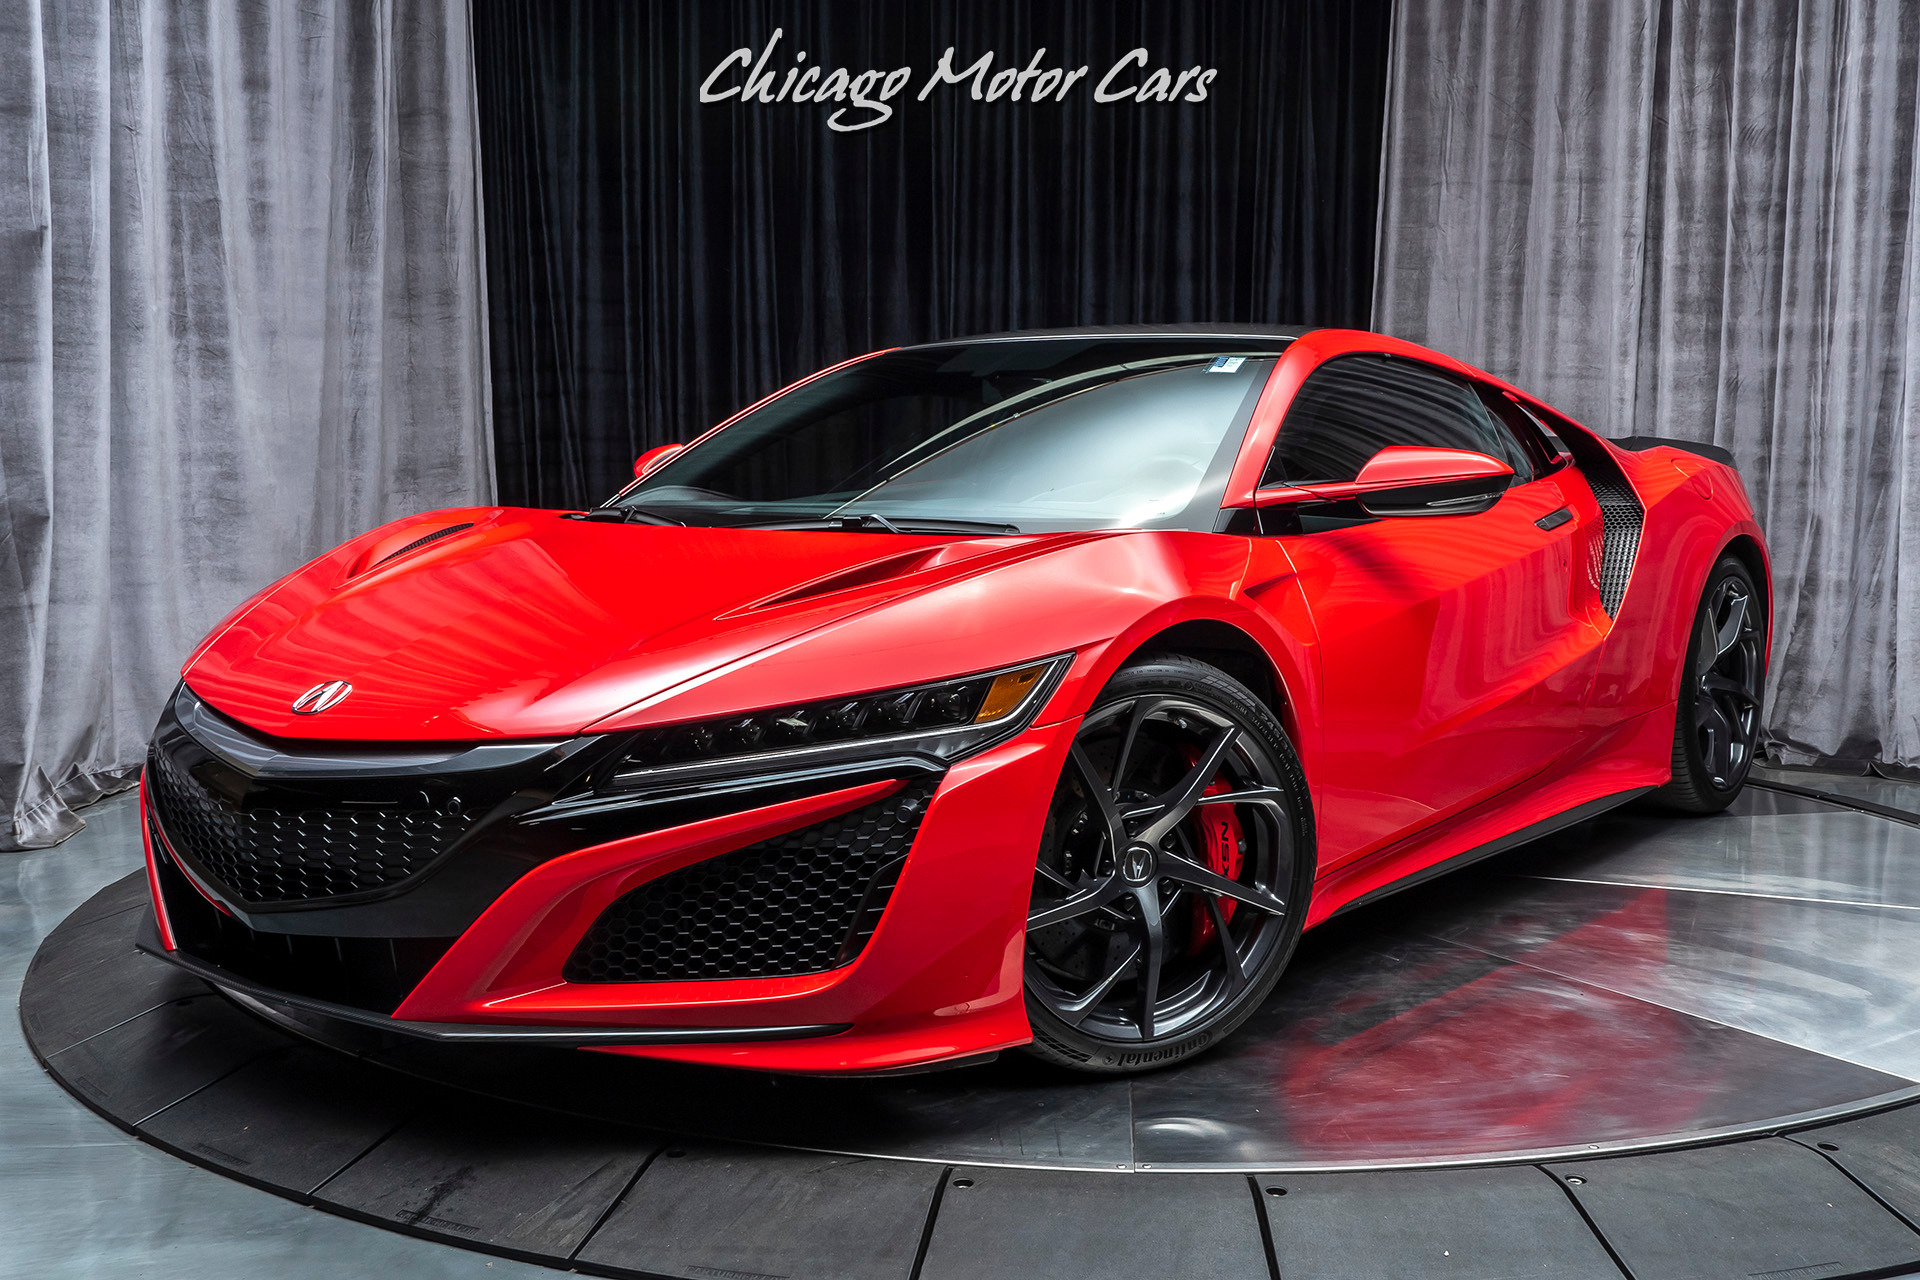 Used 2017 Acura Nsx Coupe Msrp 200500 Only